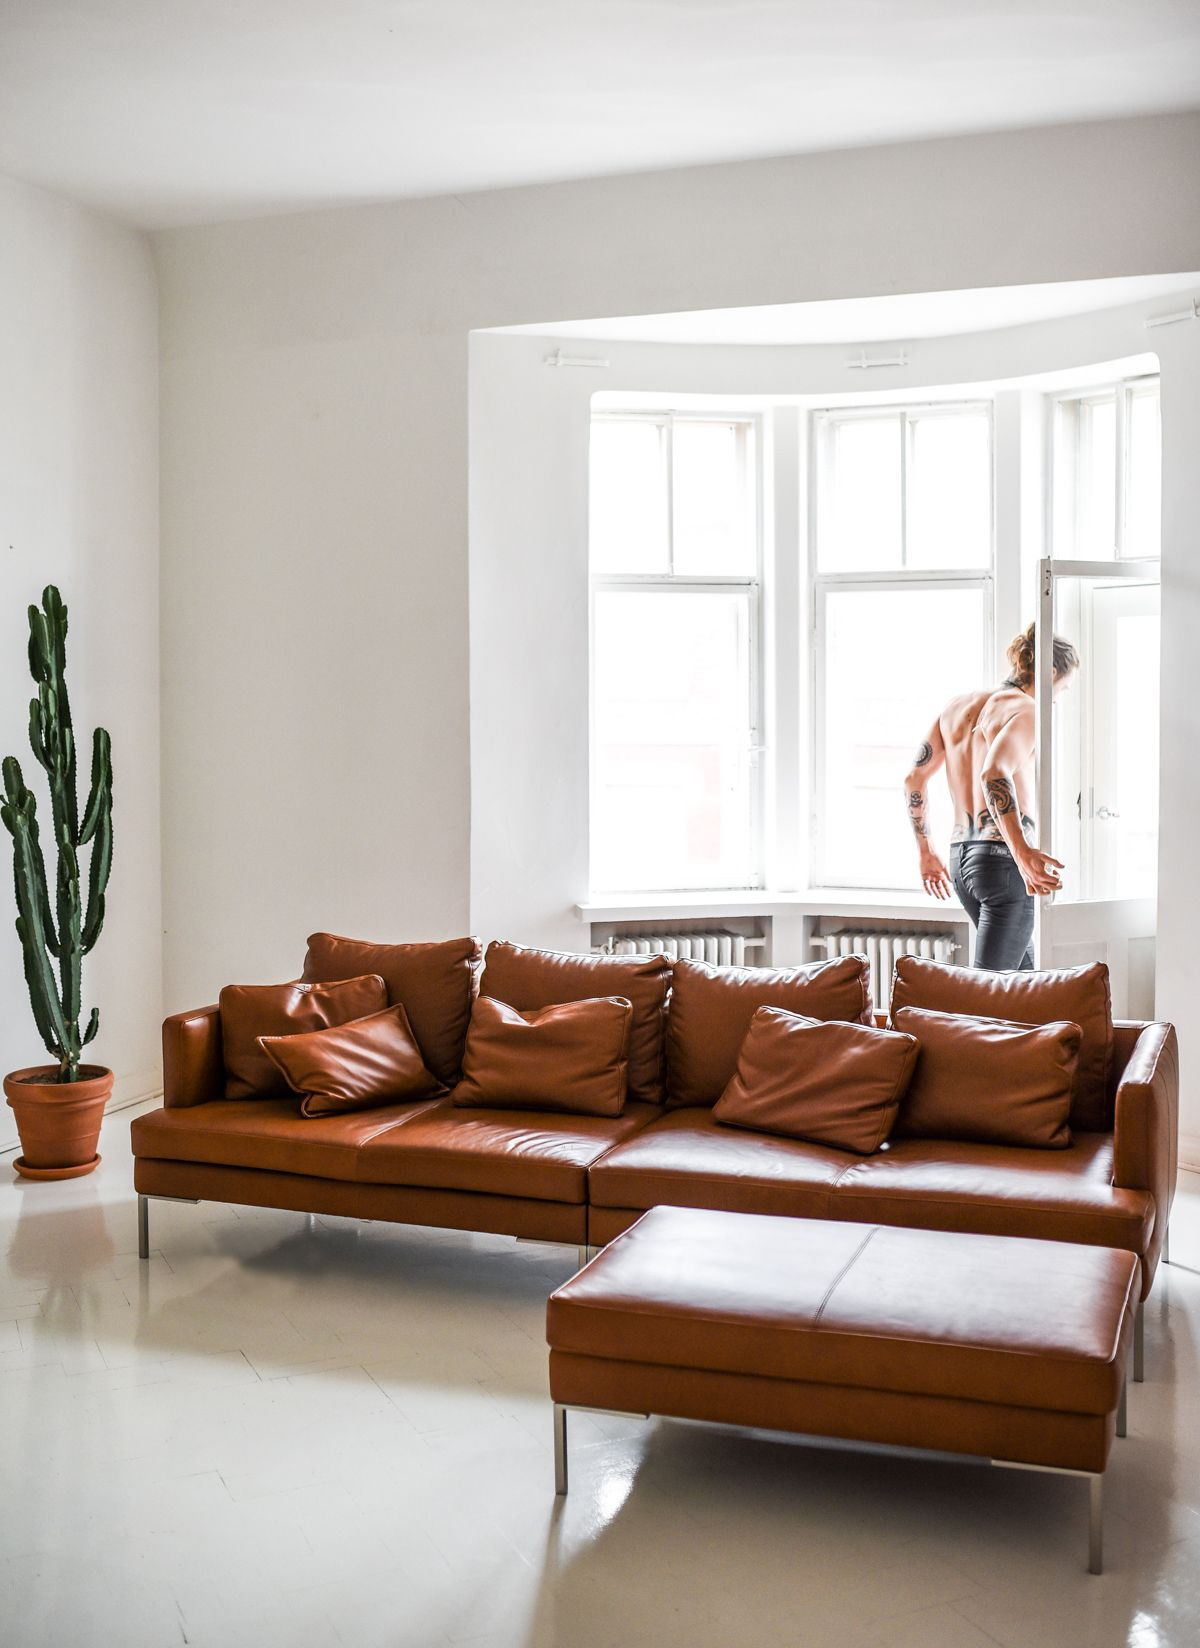 Home Details All White Everything And Istra Leather Sofa By Boconcept Photo By Stella Harasek Www Stell White Leather Sofas Sofa Deals Best Leather Sofa